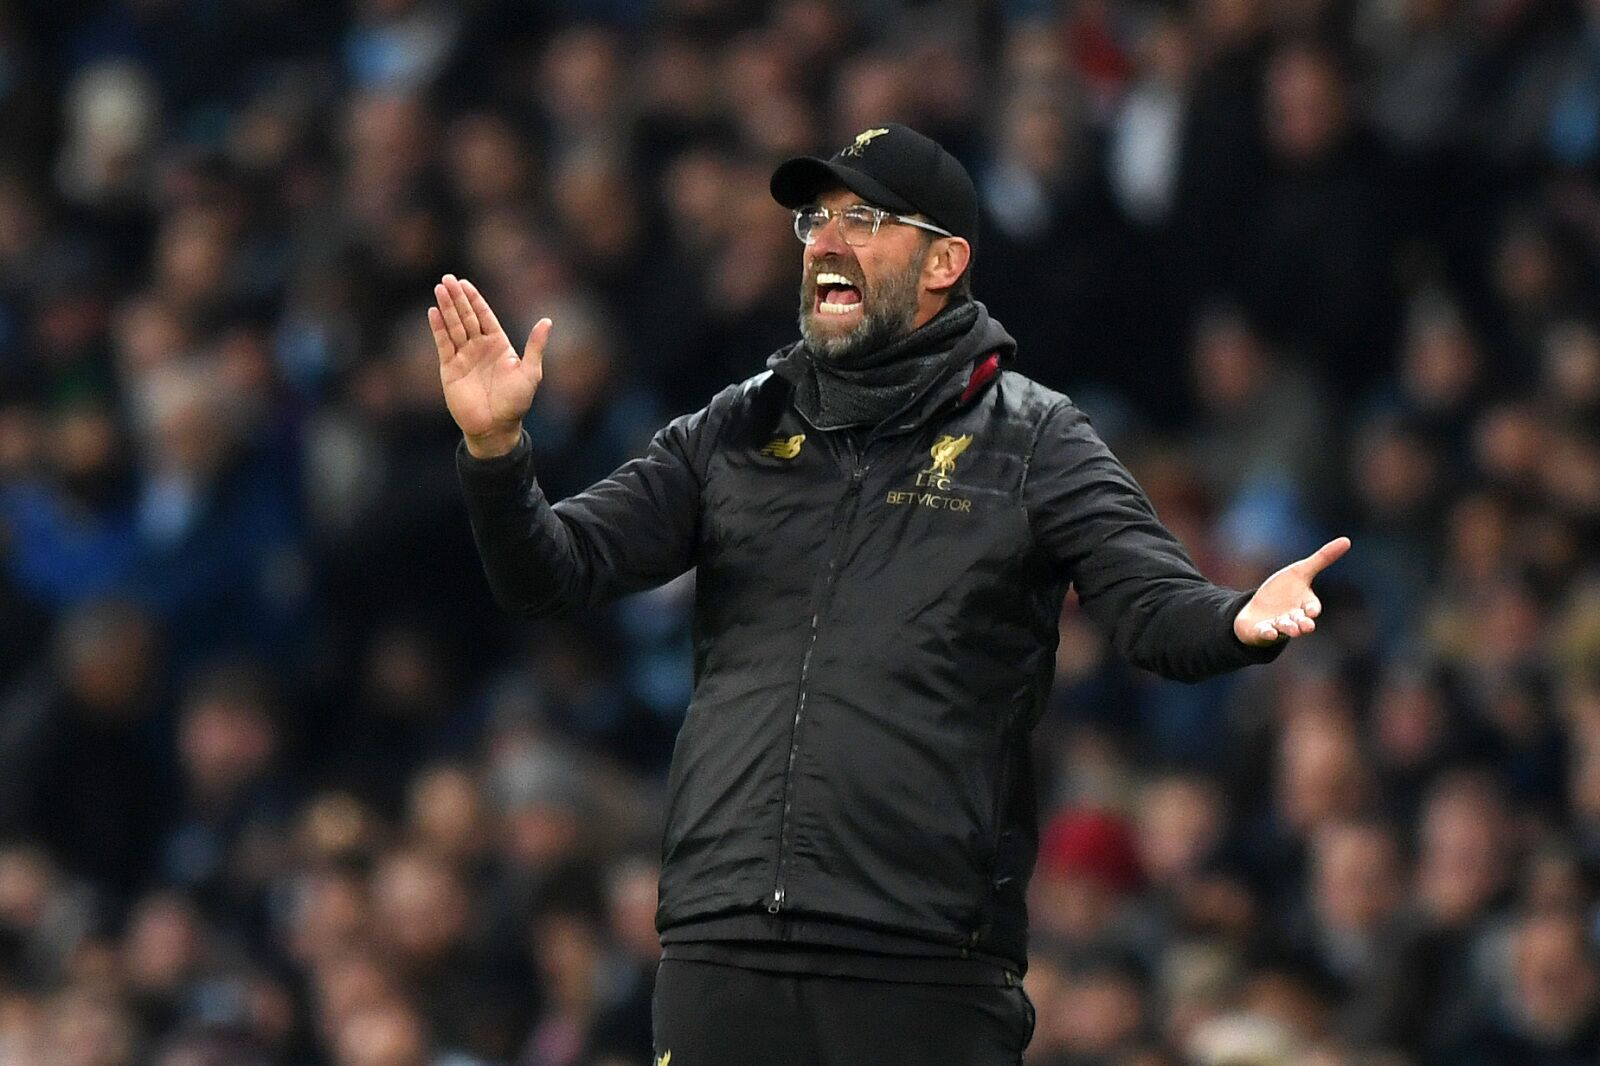 Liverpool will give former Man City player debut says Jurgen Klopp